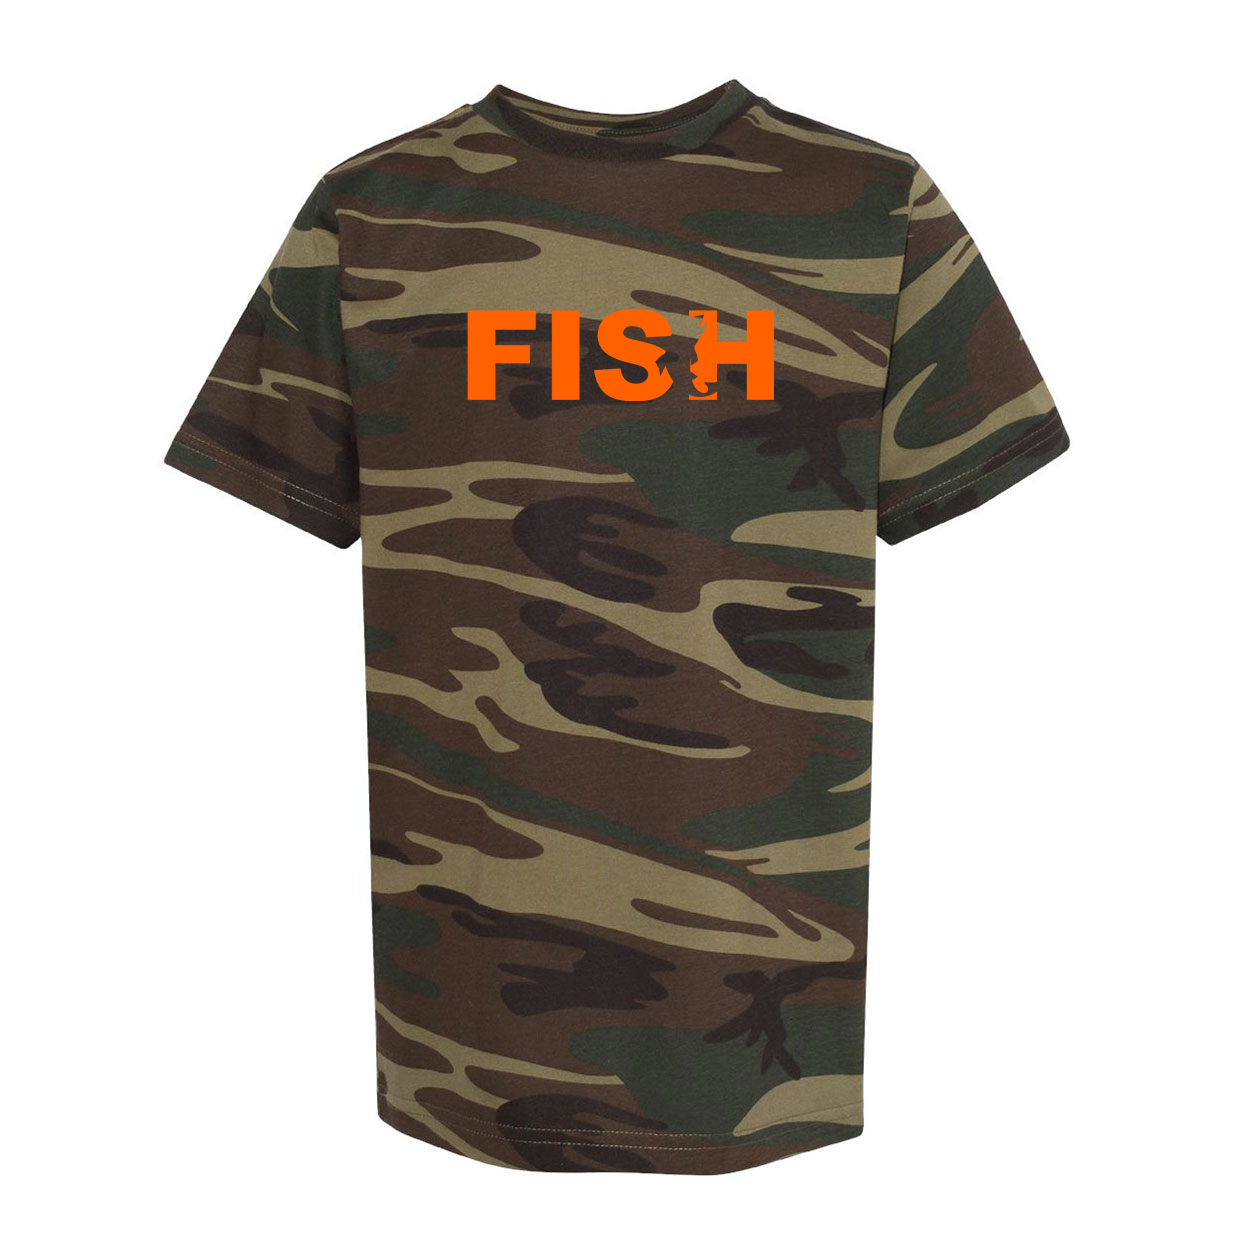 Fish Catch Logo Classic Youth Unisex T-Shirt Camo (Orange Logo)